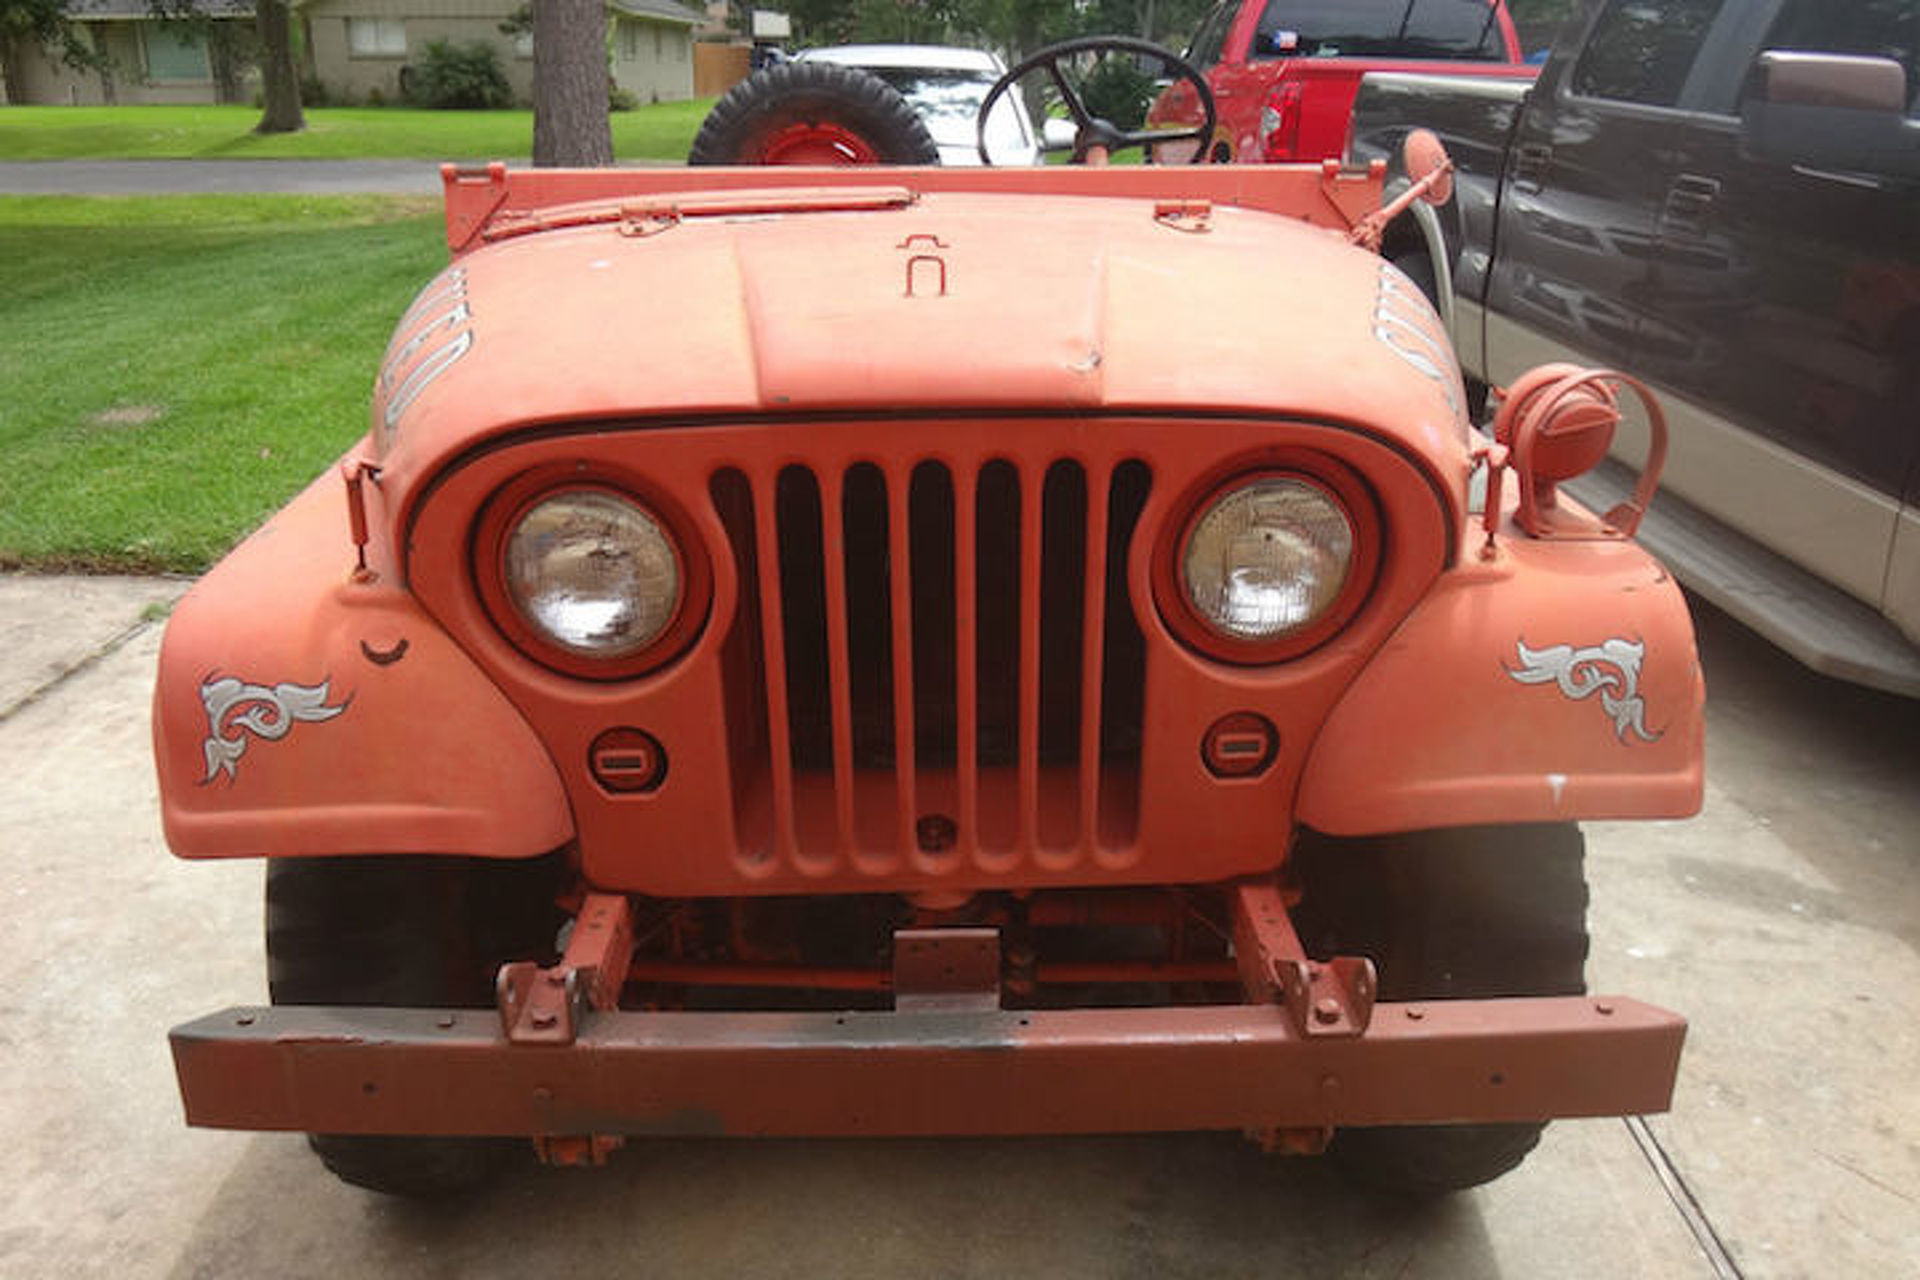 1953 willys jeep fire truck has less than 4000 original this 1953 willys jeep fire truck has less than 4000 original miles publicscrutiny Choice Image